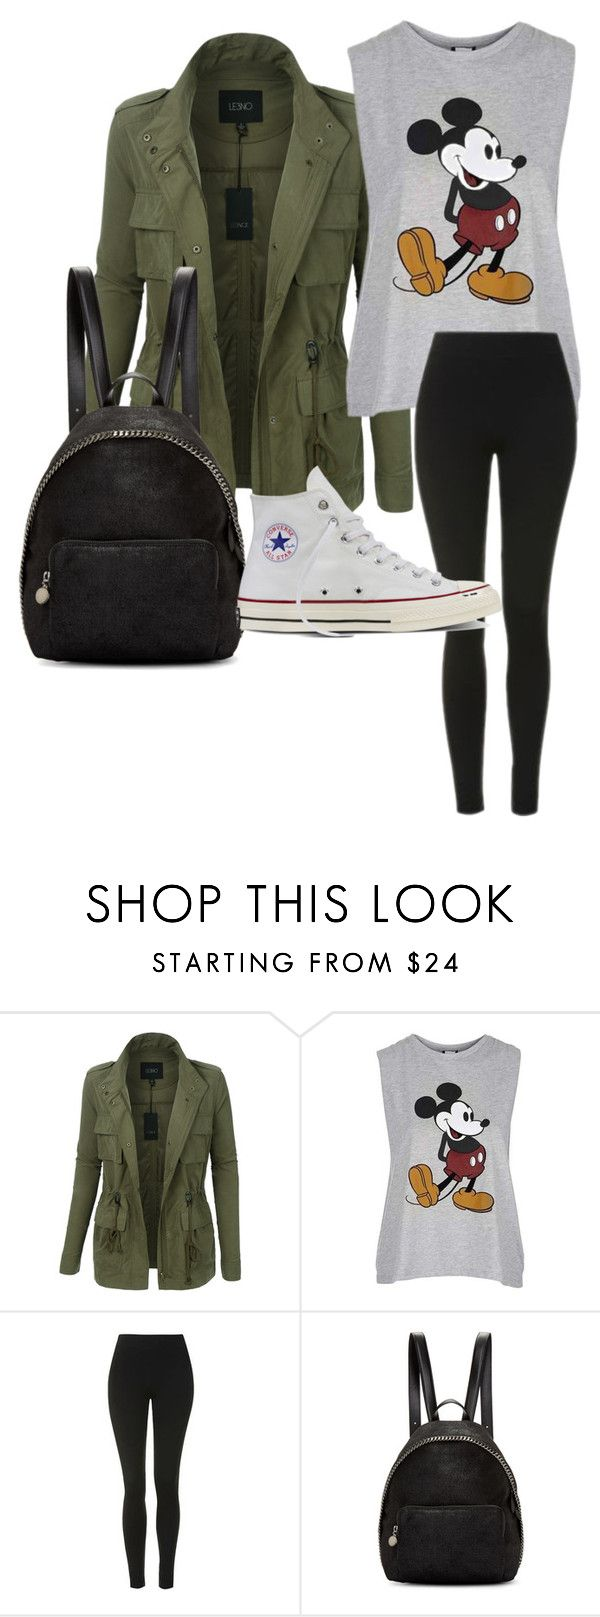 """Untitled #1"" by ranixcamande on Polyvore featuring LE3NO, Topshop, STELLA McCARTNEY and Converse"